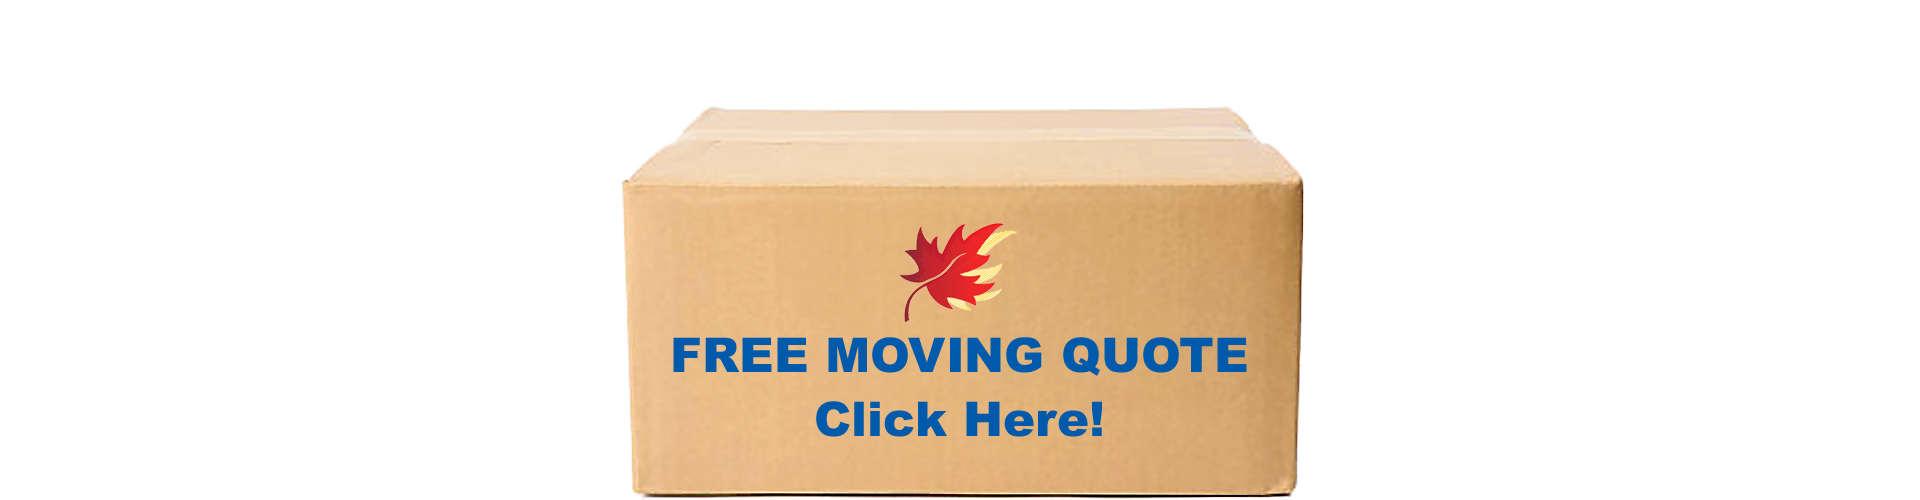 free-moving-quote